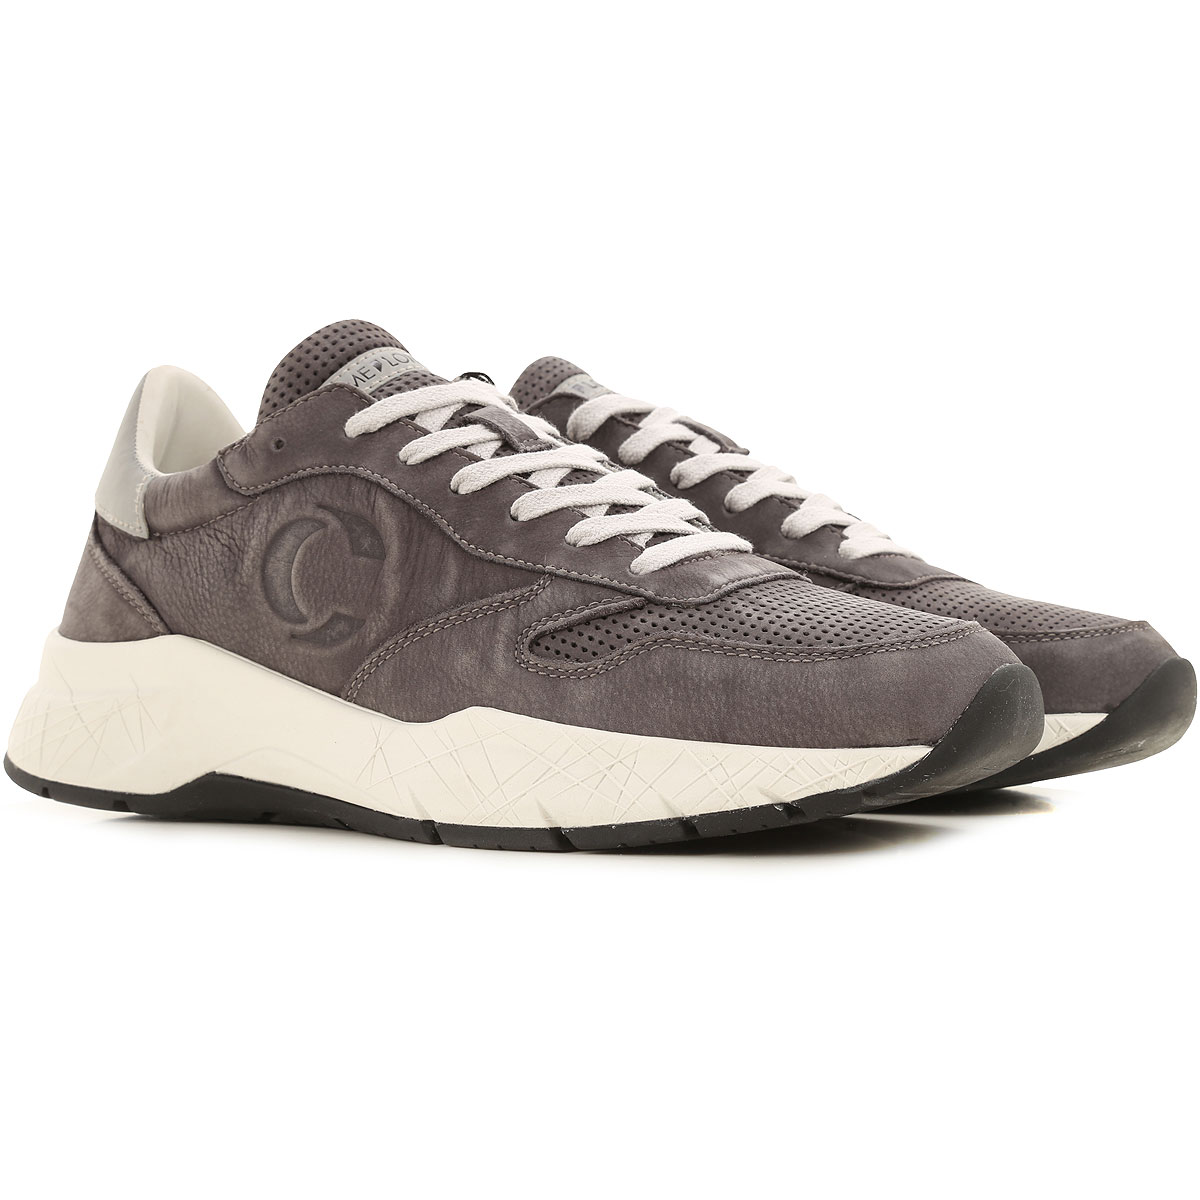 Crime Sneakers for Men On Sale, Anthracite, Leather, 2019, 10.5 11.5 7.5 8 9